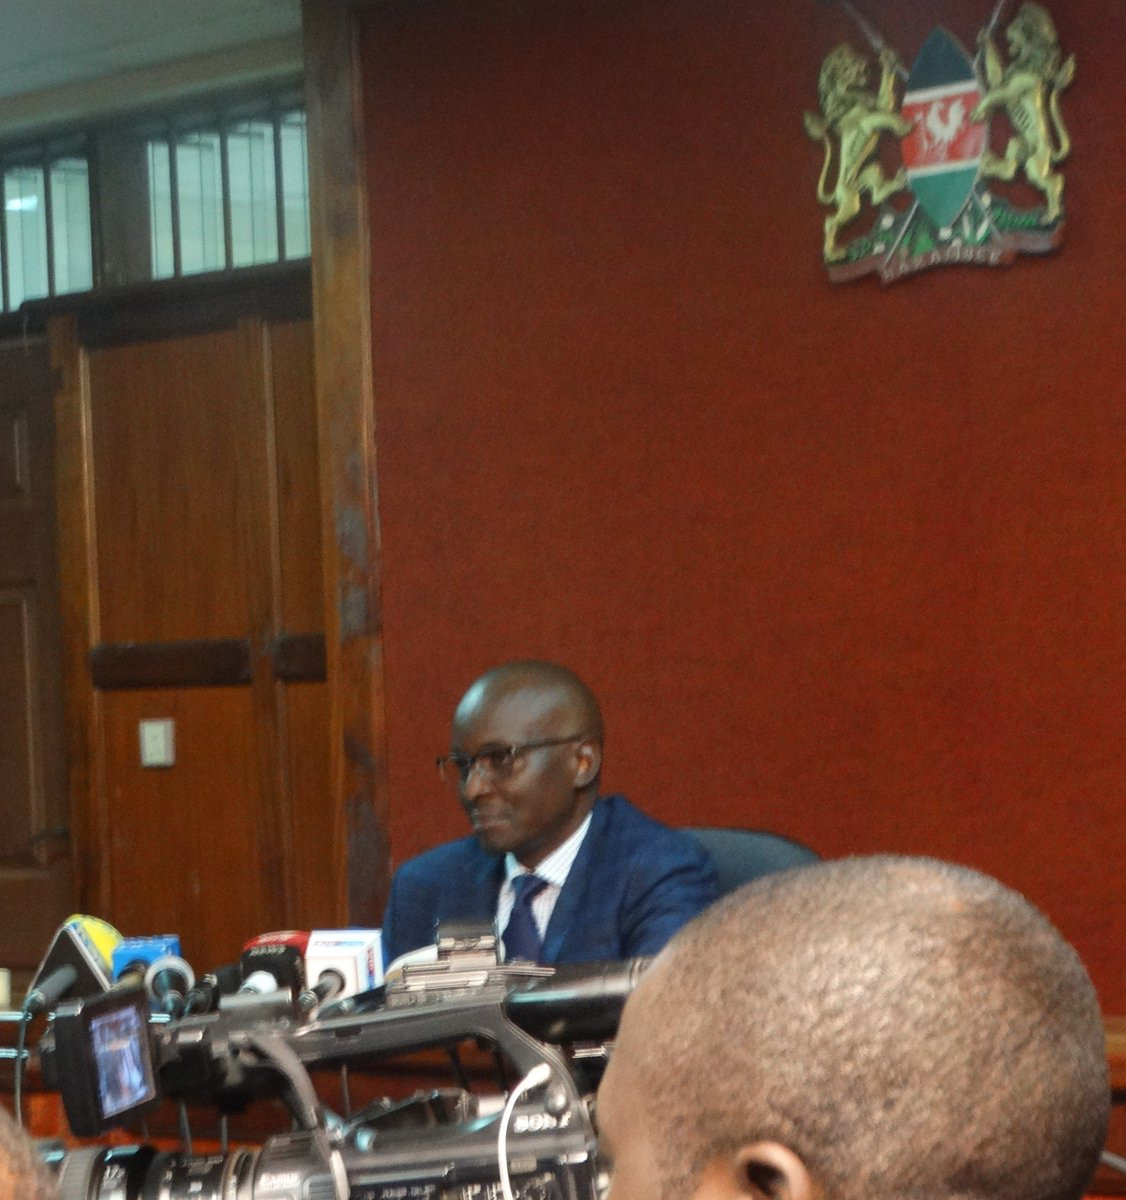 The defendants were ordered to surrender their passports in court today ©ODPP_KE/Twitter